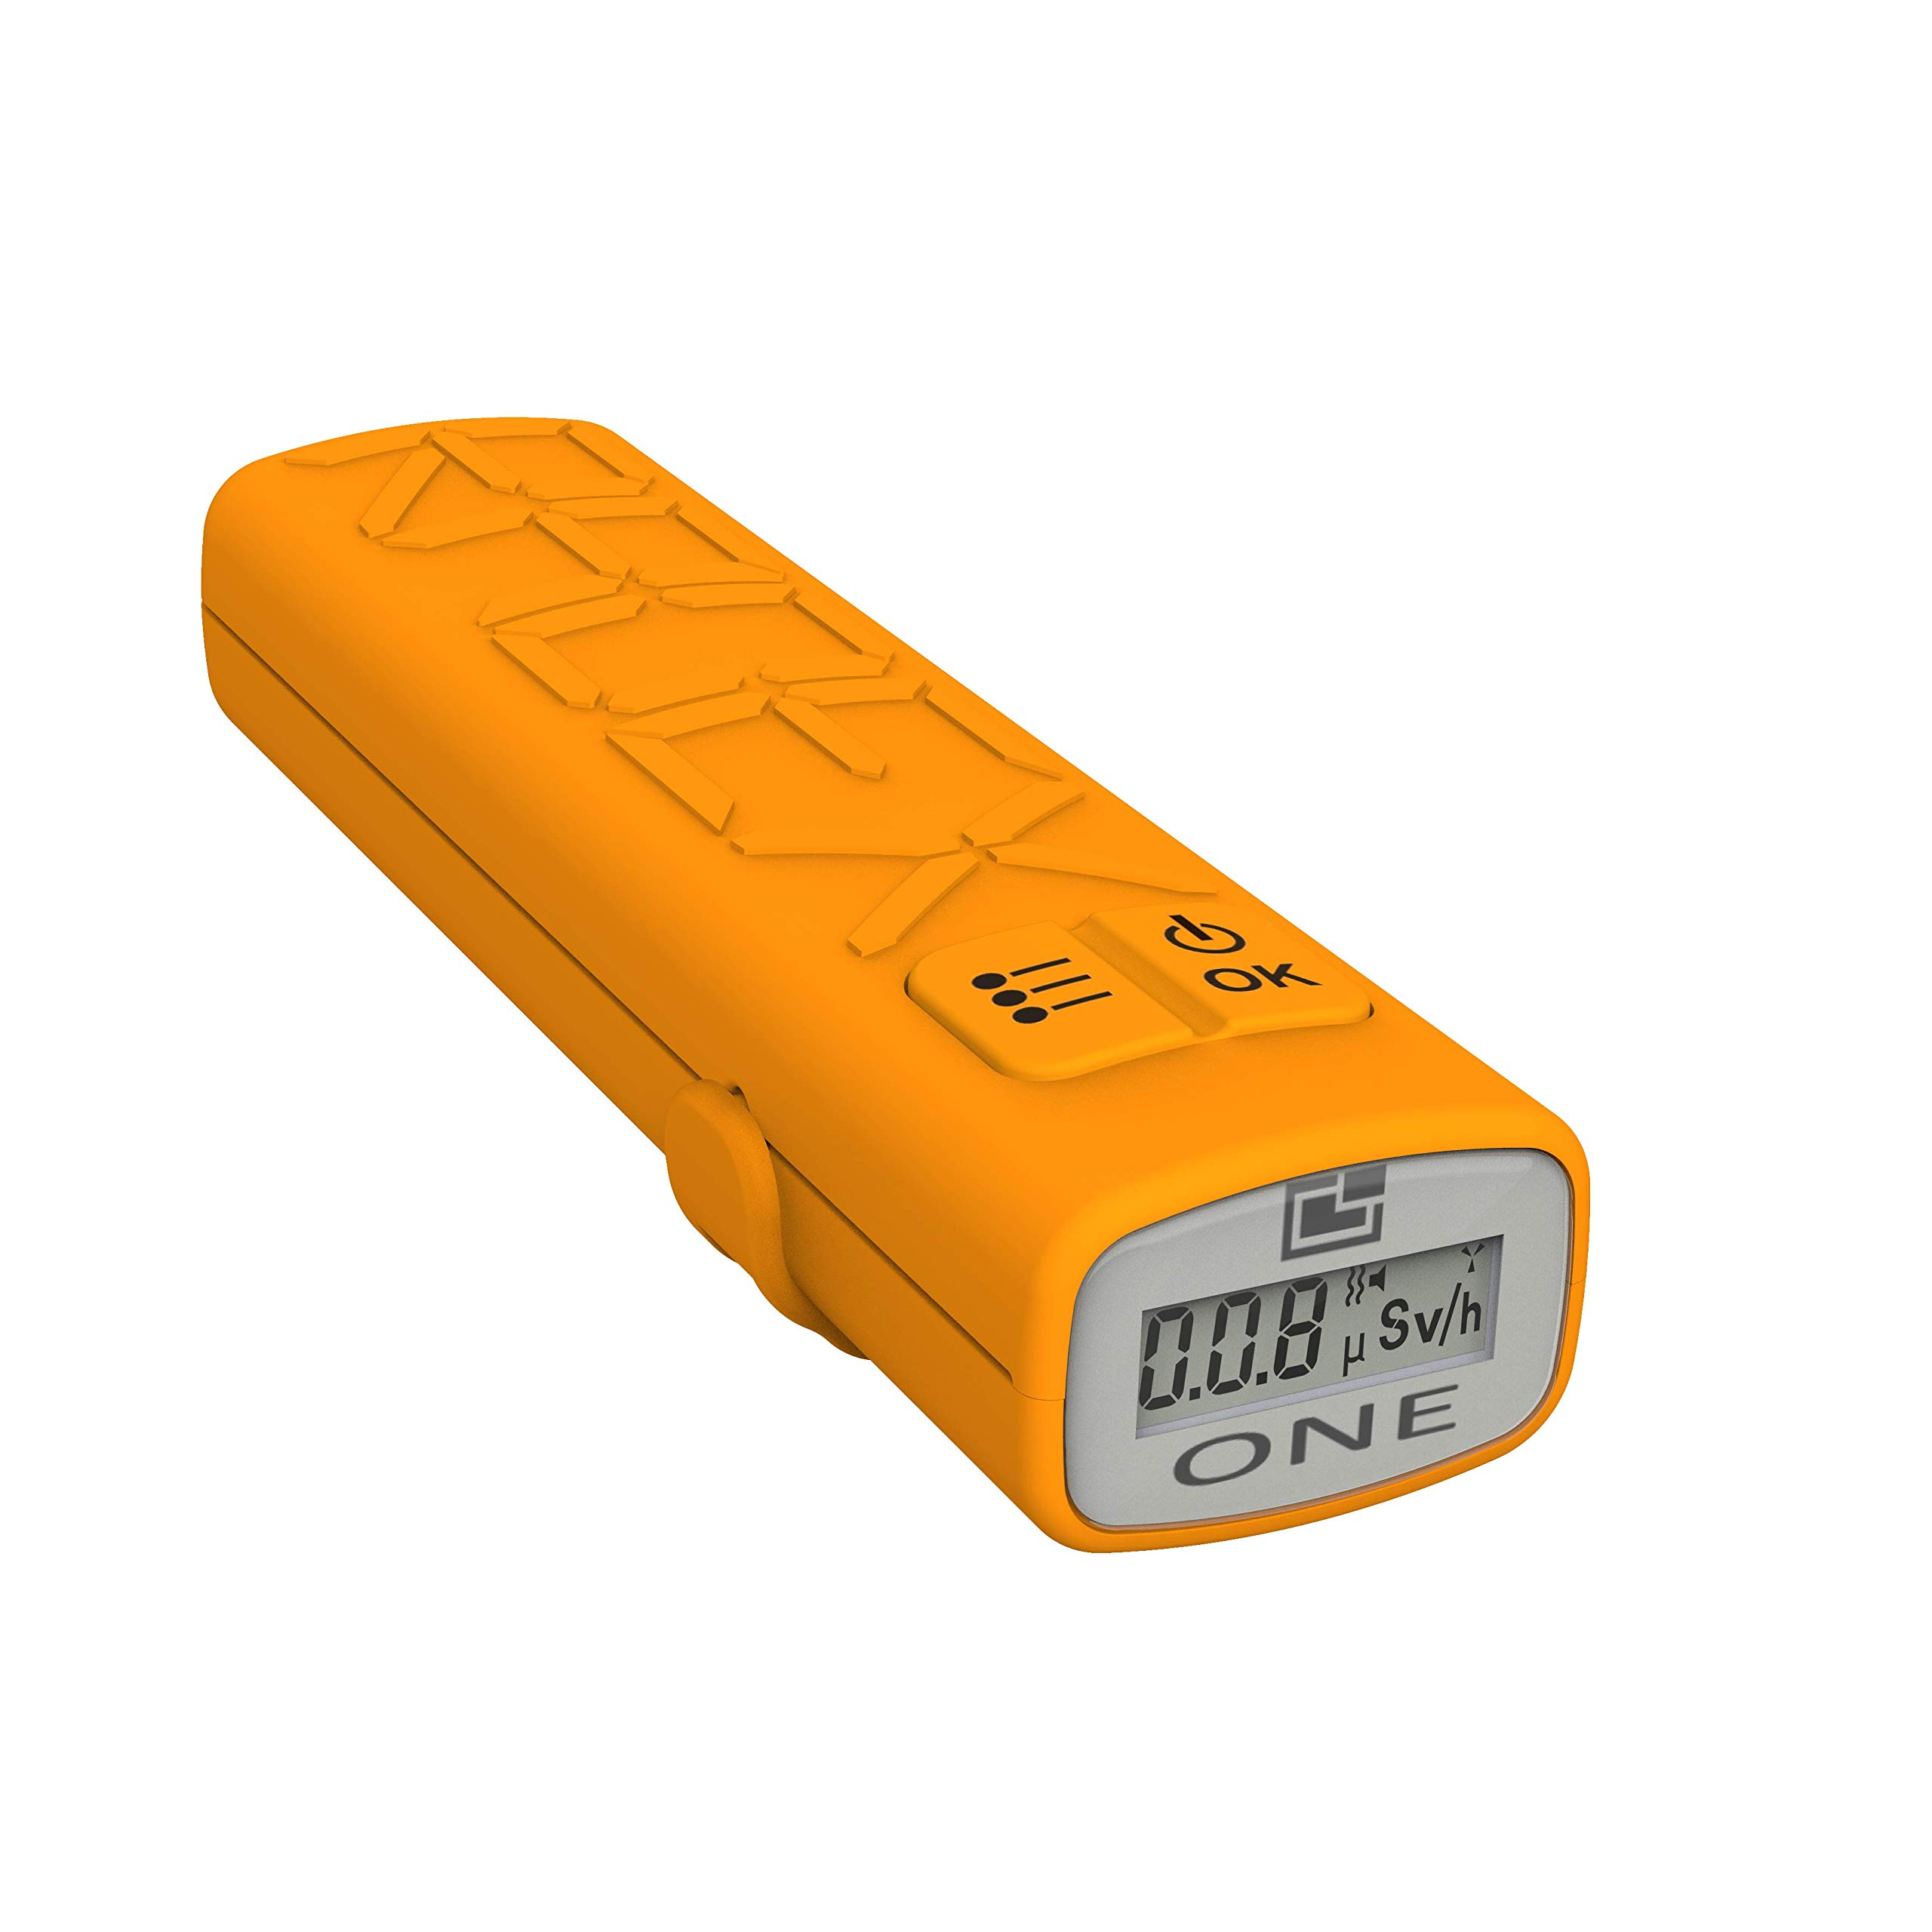 RADEX ONE Personal RAD Safety''Outdoor Edition'' High Sensitivity Compact Personal Dosimeter, Geiger Counter, Nuclear Radiation Detector w/Software